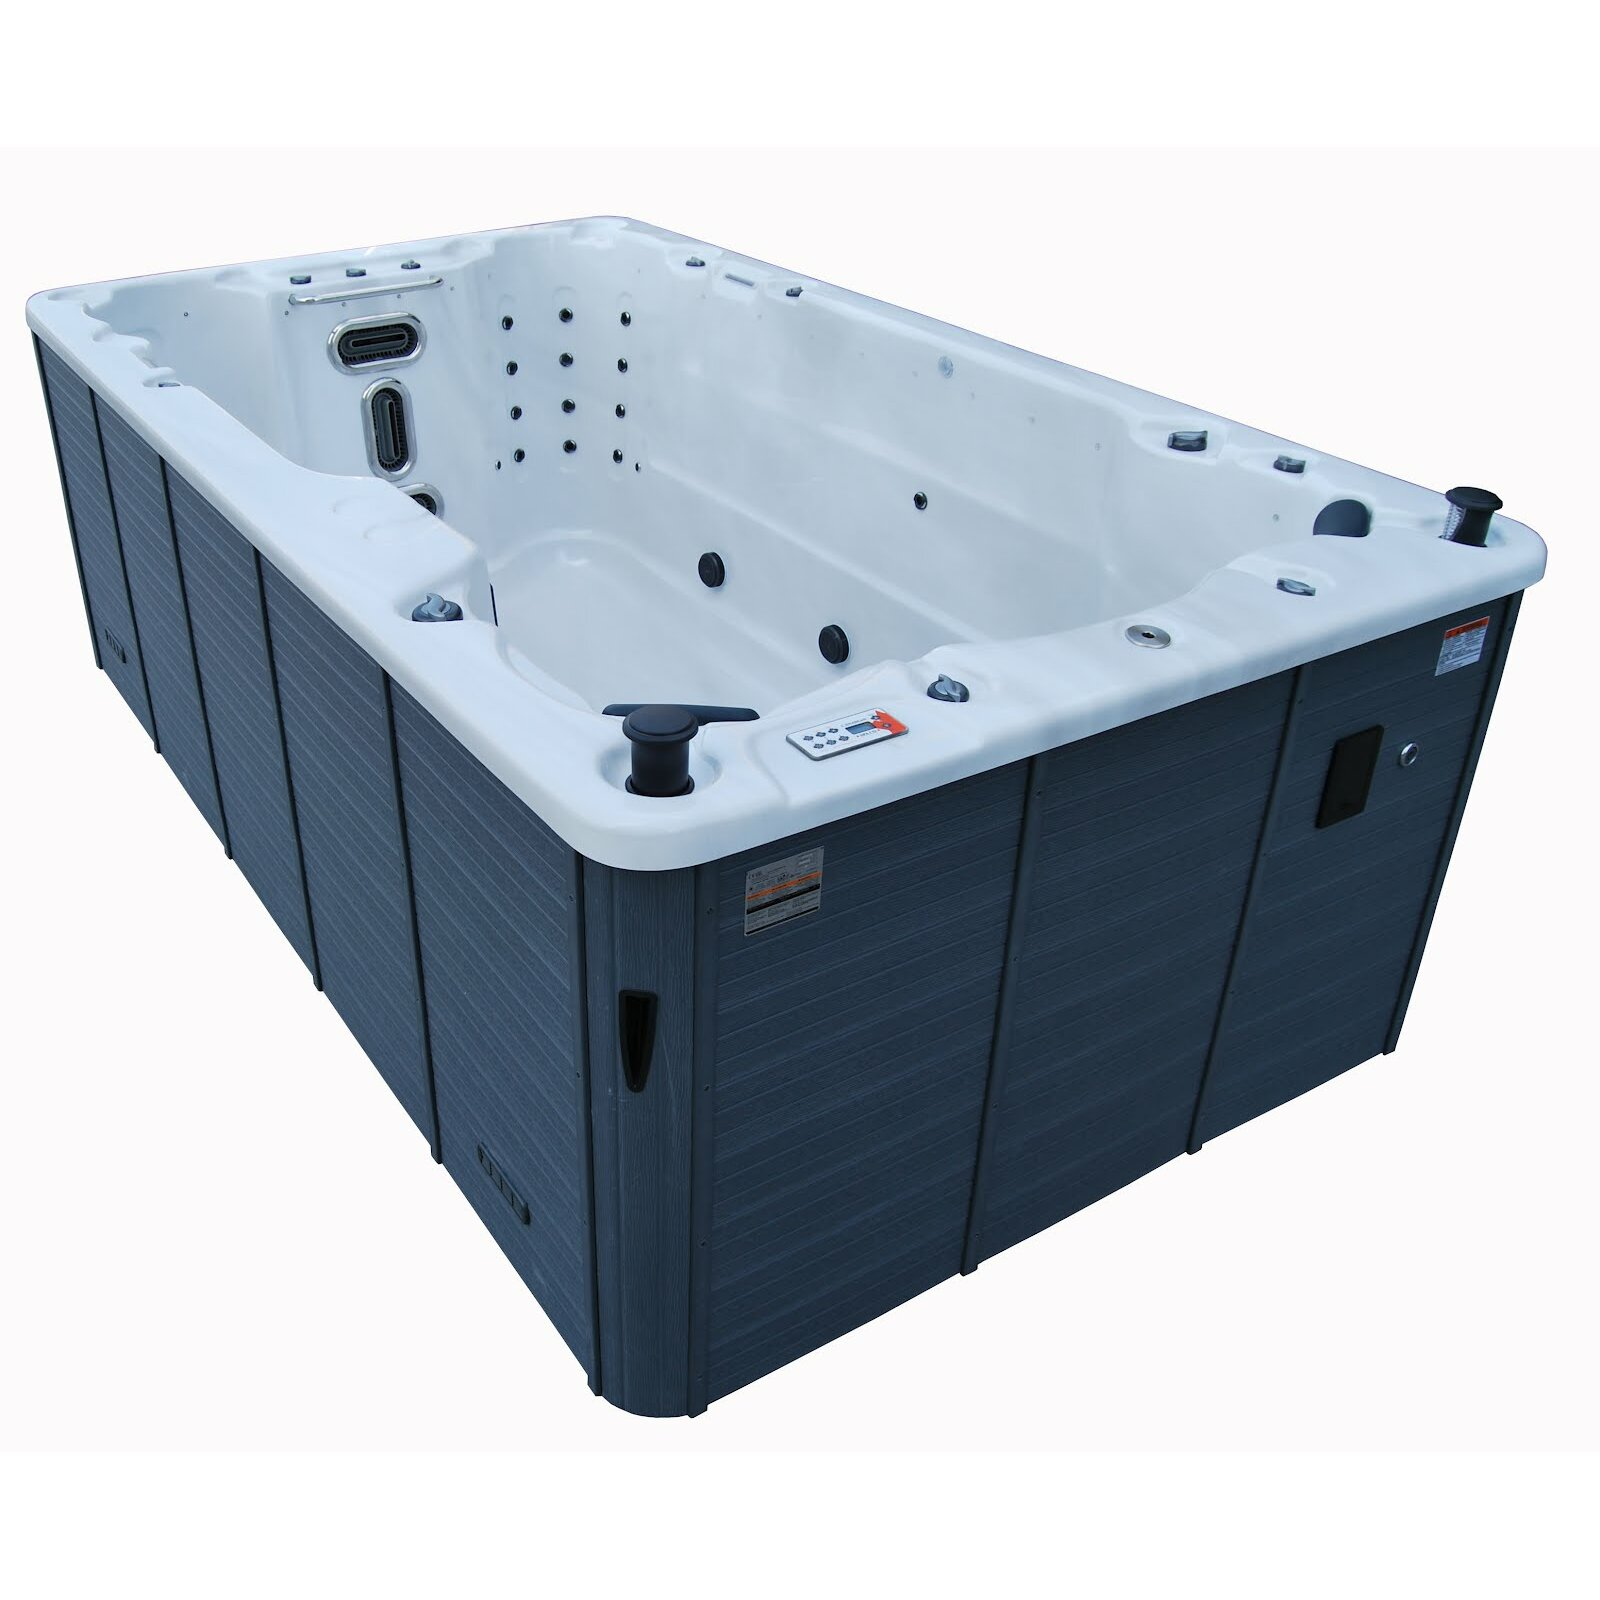 St lawrence 39 jet 156 swim spa wayfair - Jacuzzi exterieur leroy merlin ...